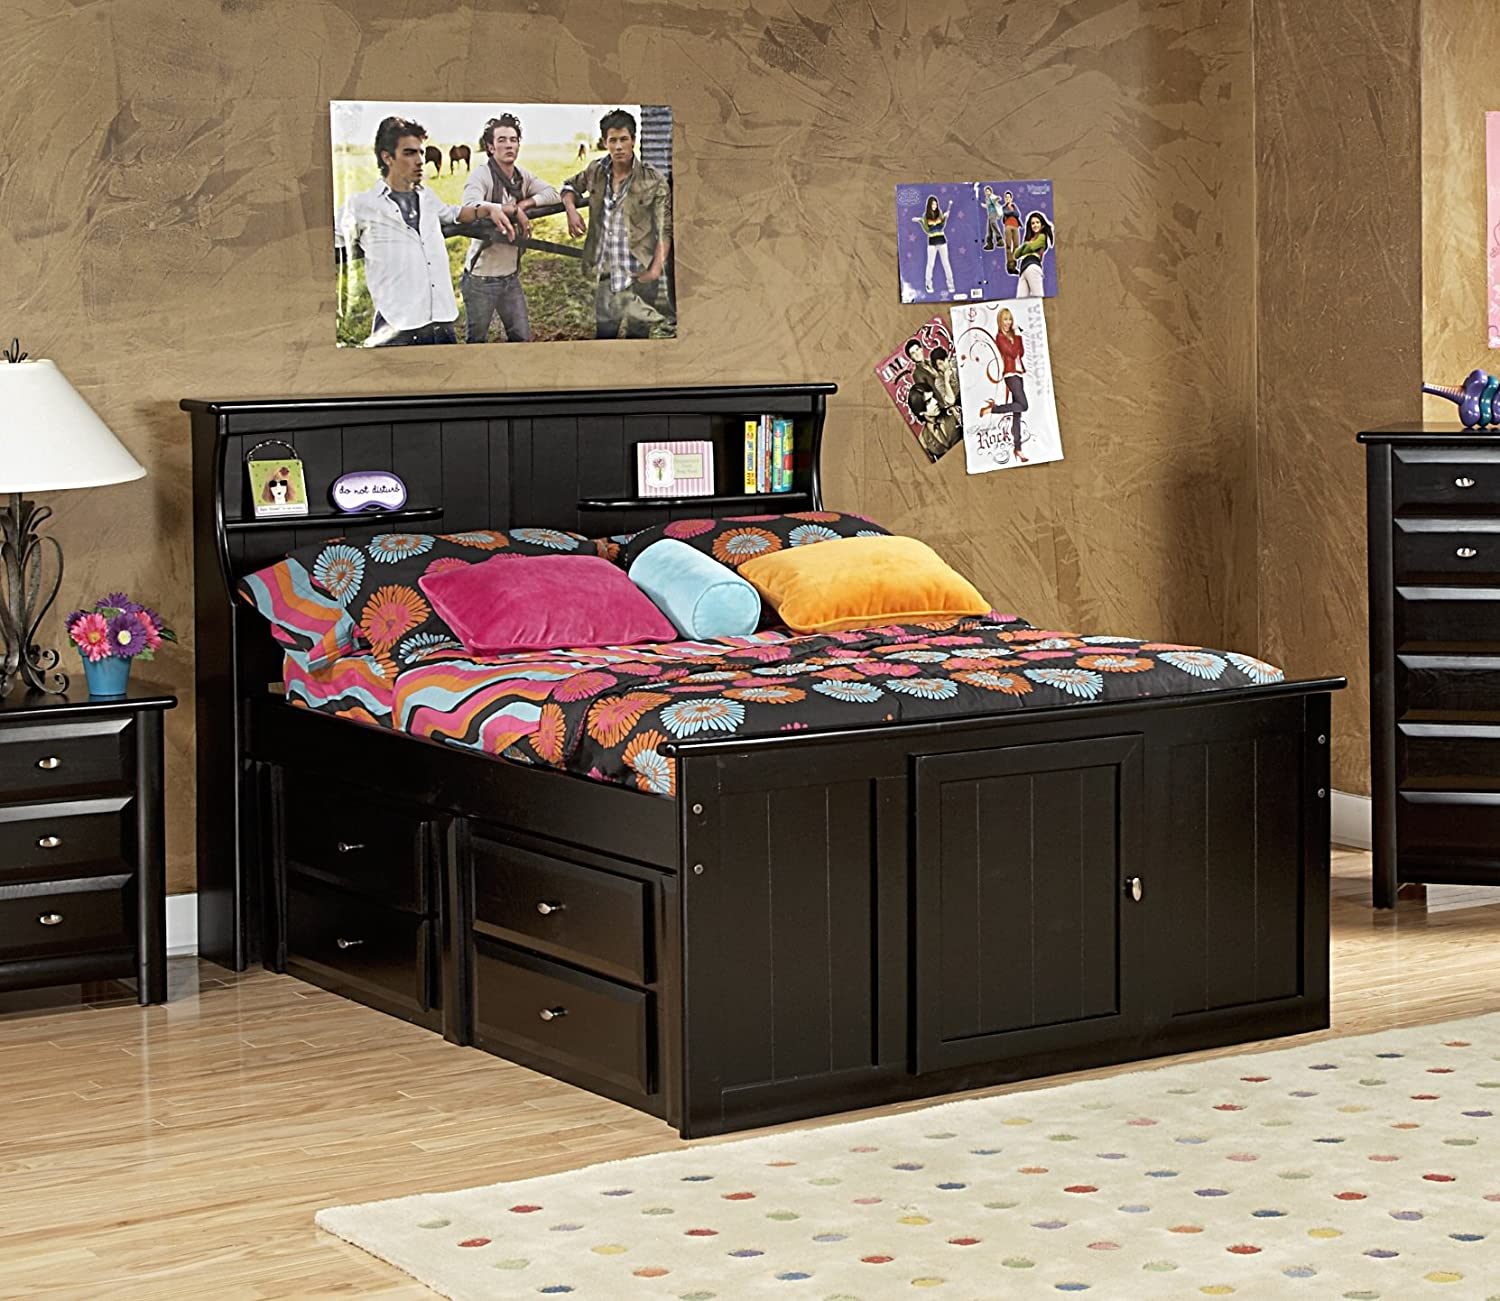 Amazon.com: Chelsea Home Full Bed With Bookcase Headboard And Storage:  Kitchen U0026 Dining